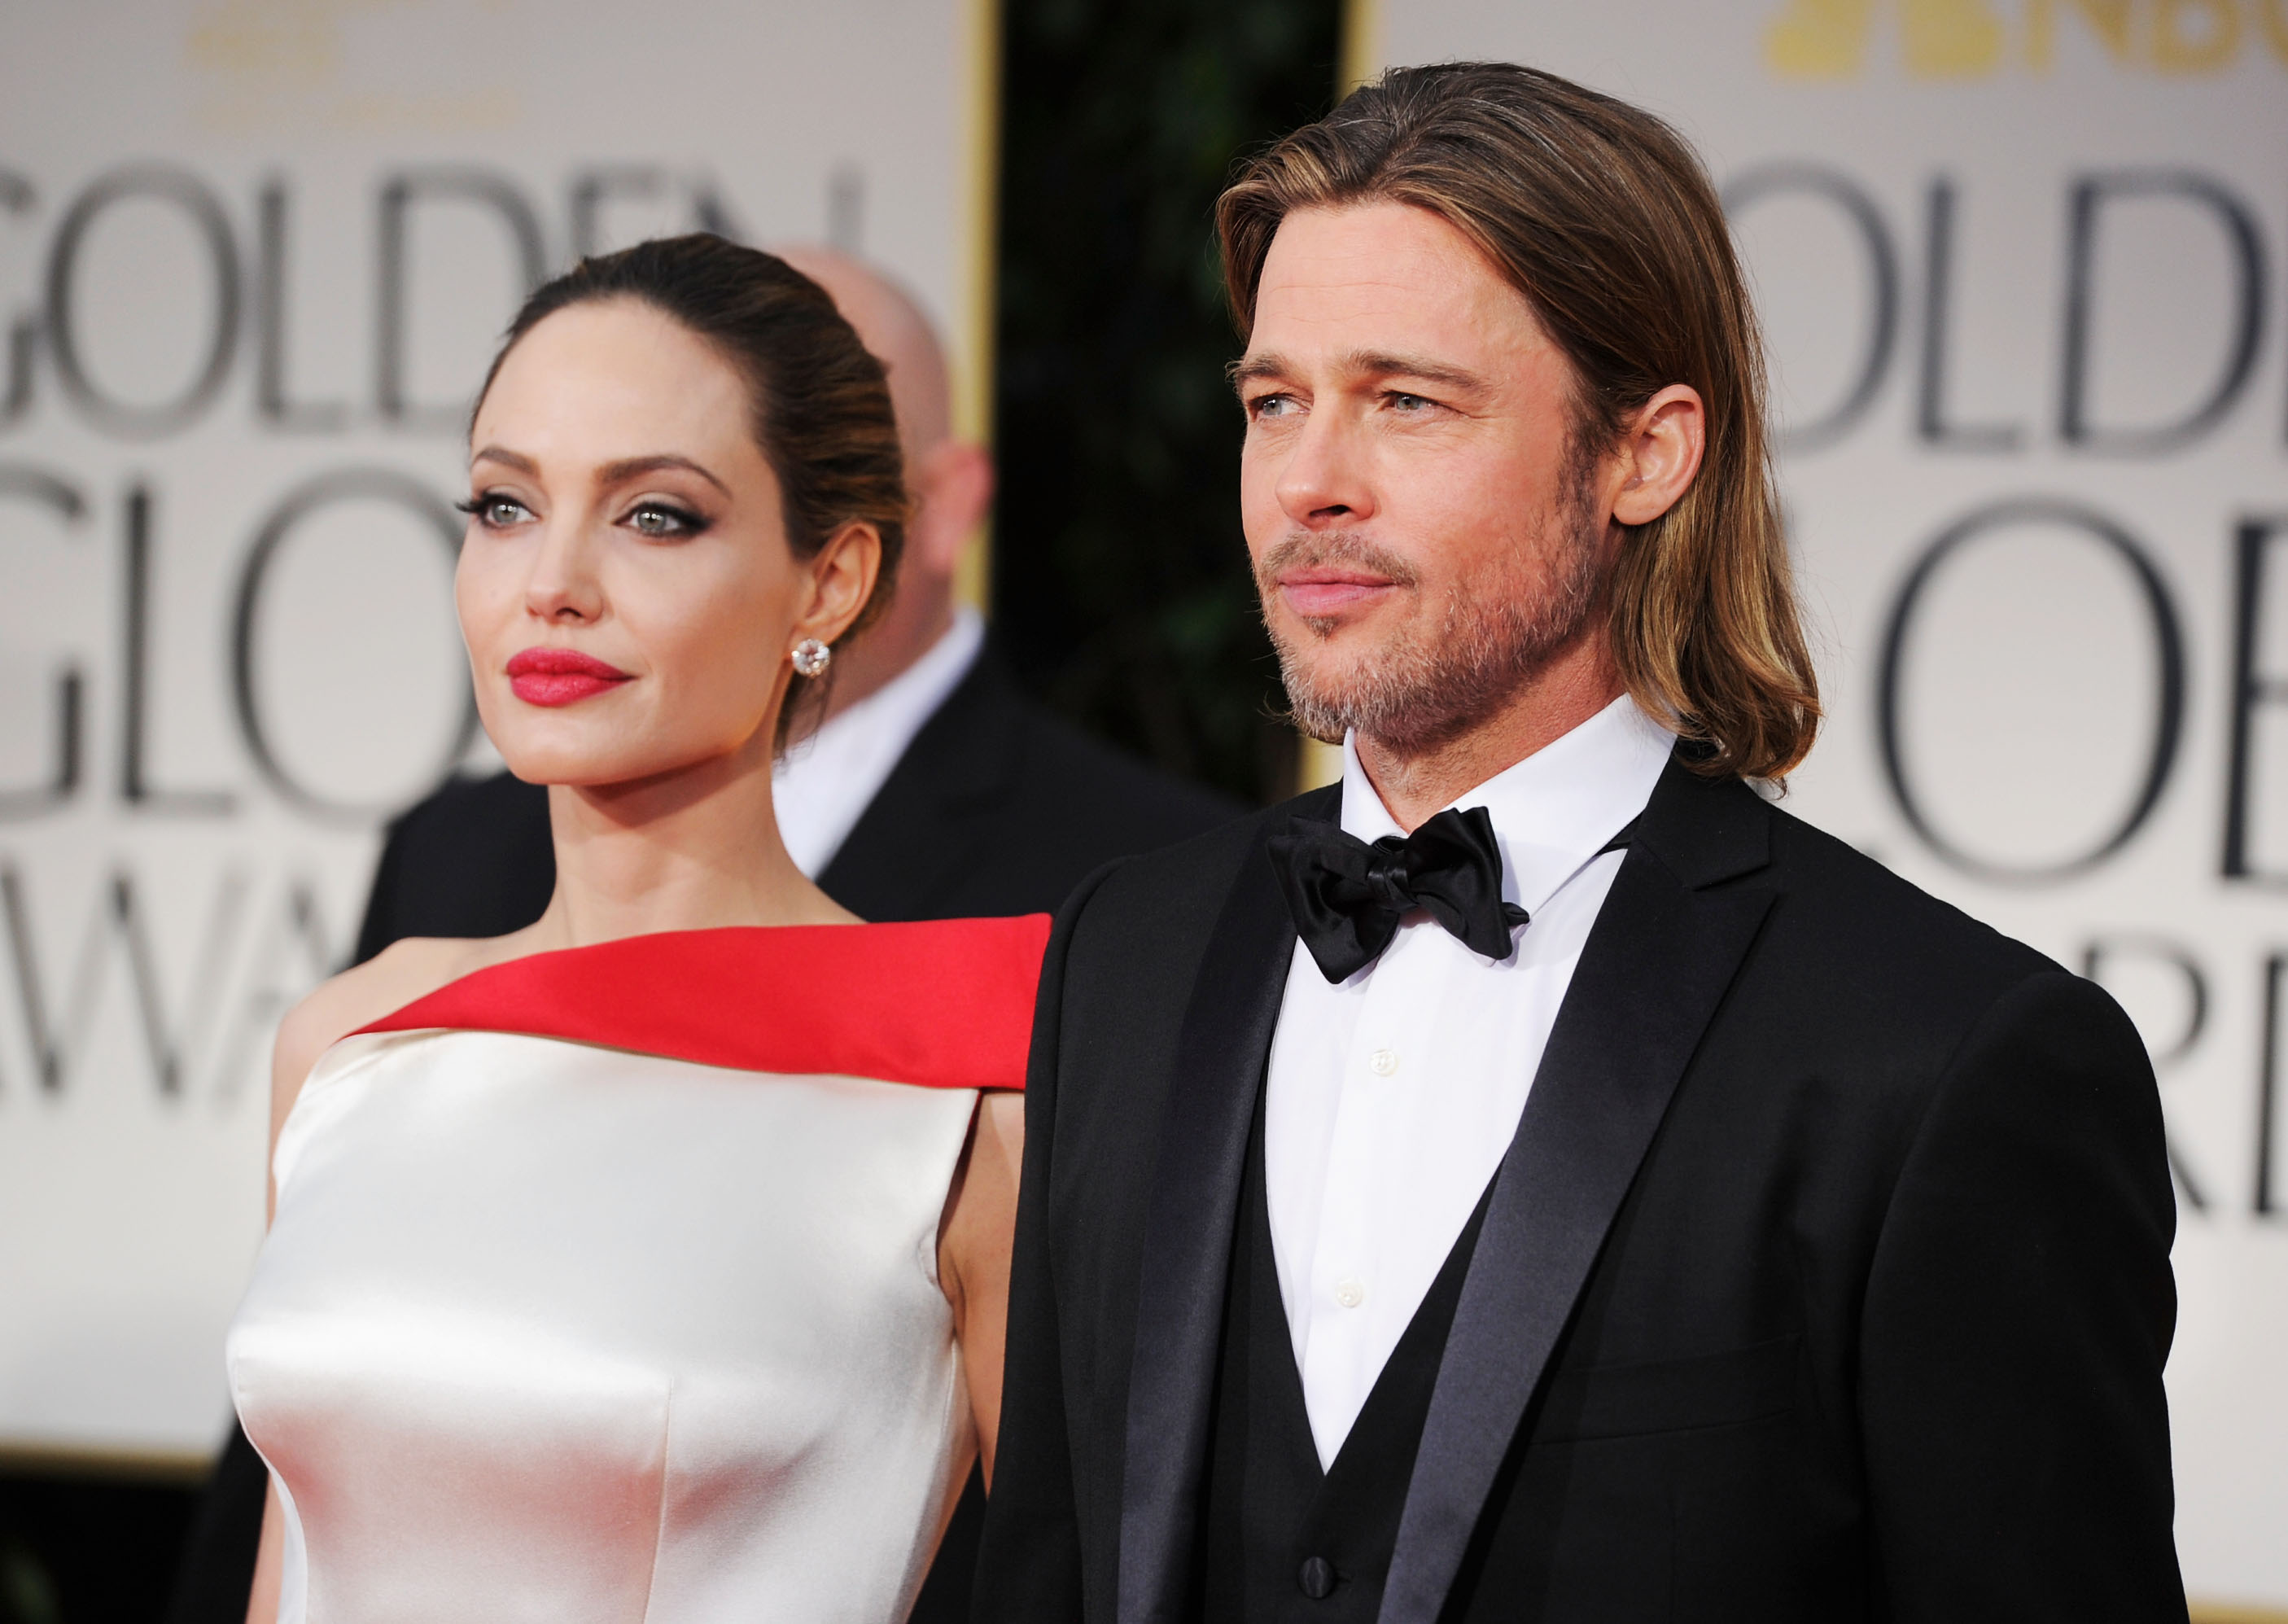 Brad Pitt Investigated For Child Abuse GettyImages 137133749